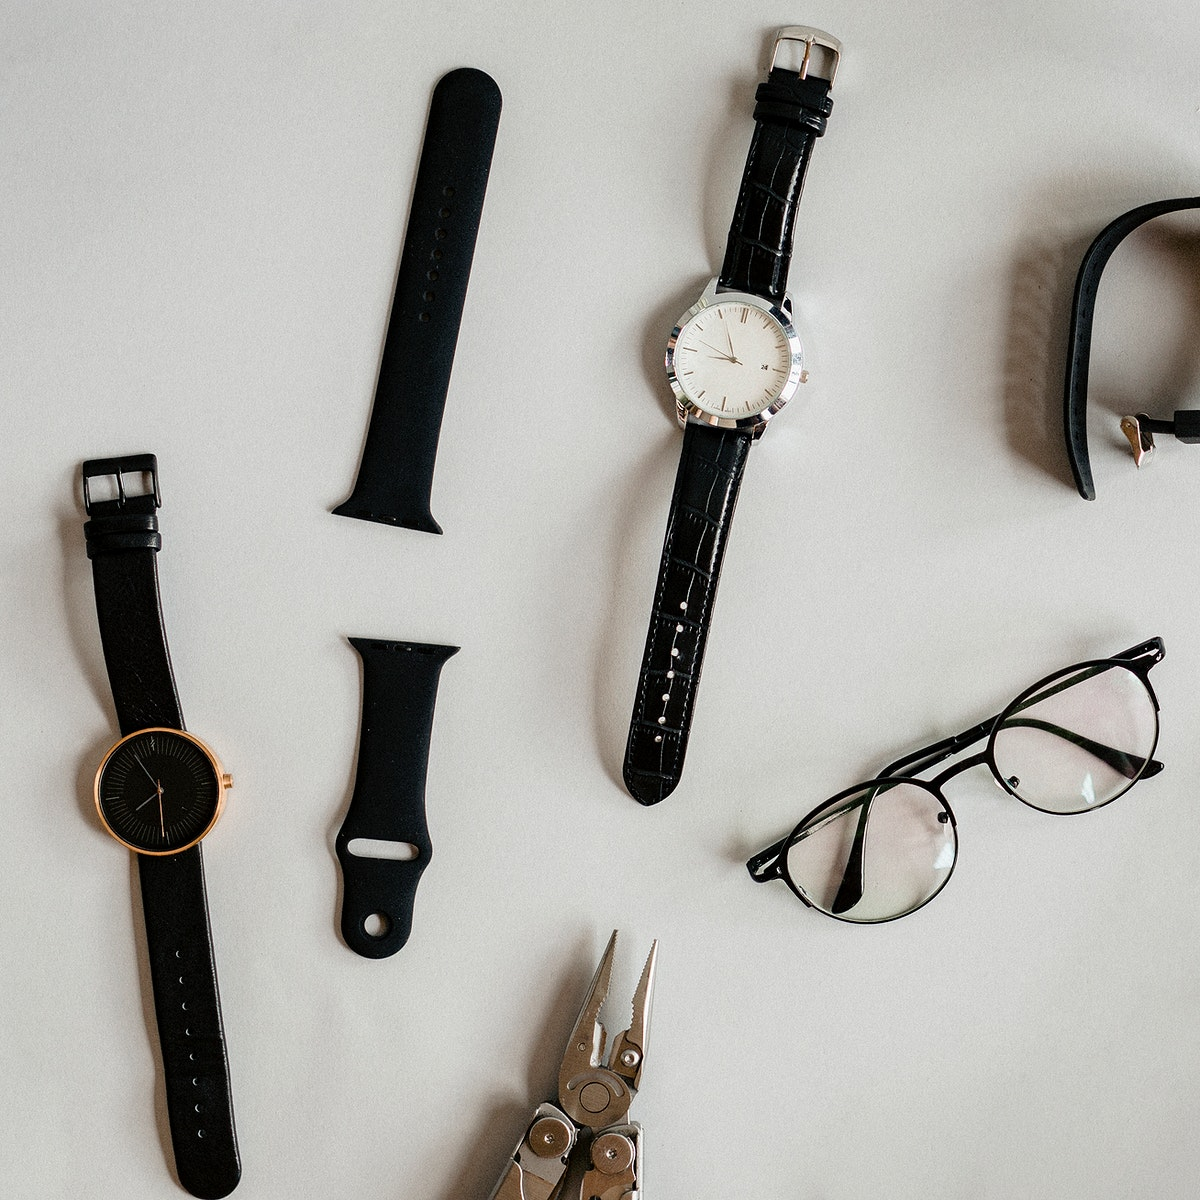 Watches and a plier on a table